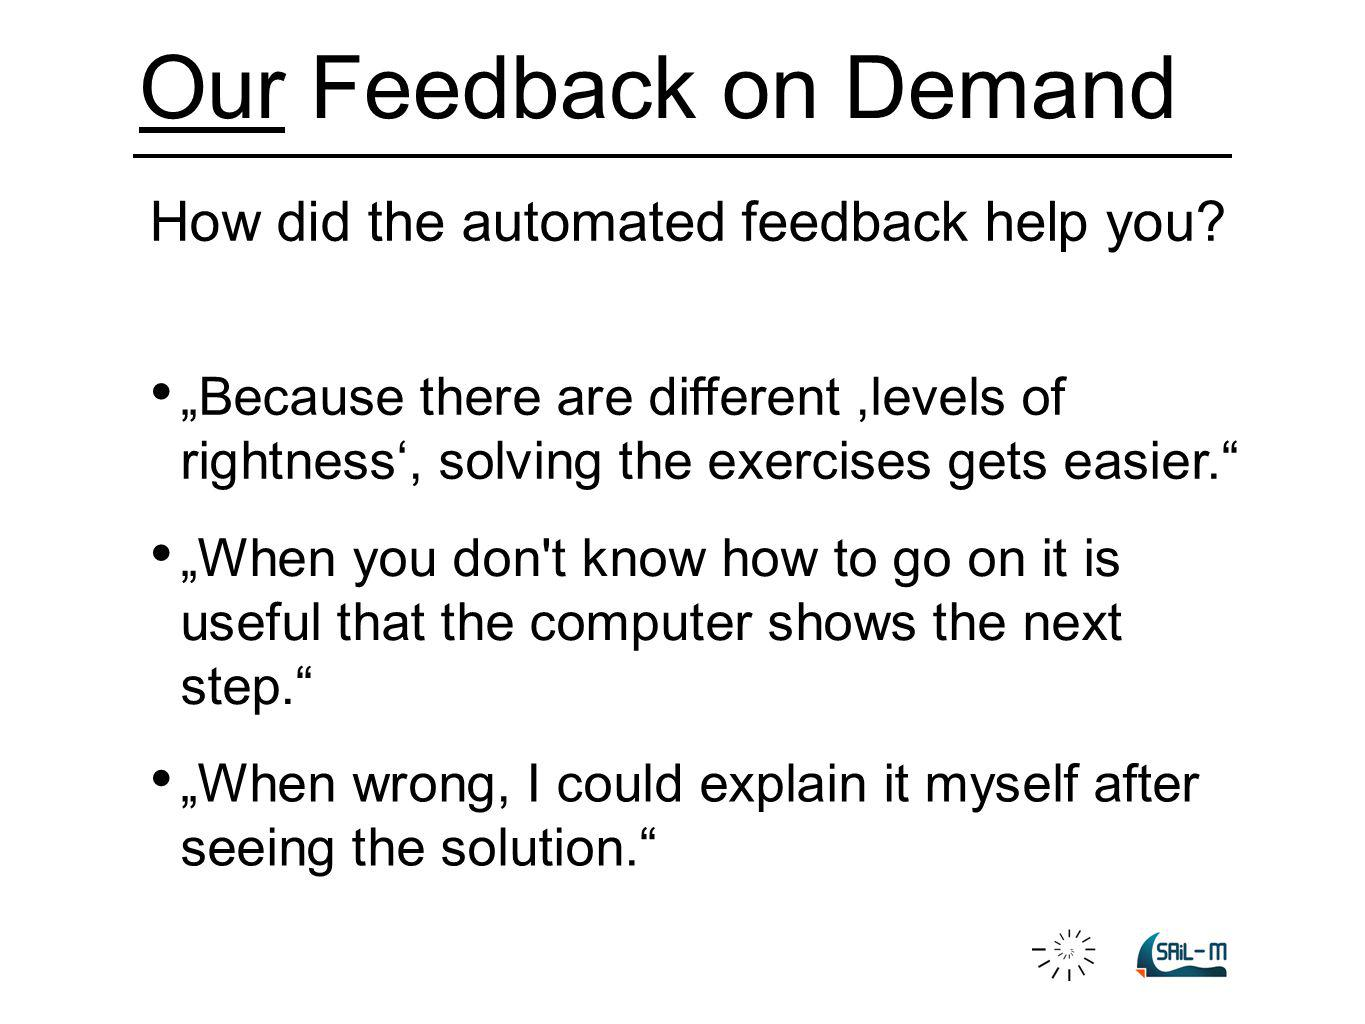 Our Feedback on Demand How did the automated feedback help you? Because there are different,levels of rightness, solving the exercises gets easier. Wh